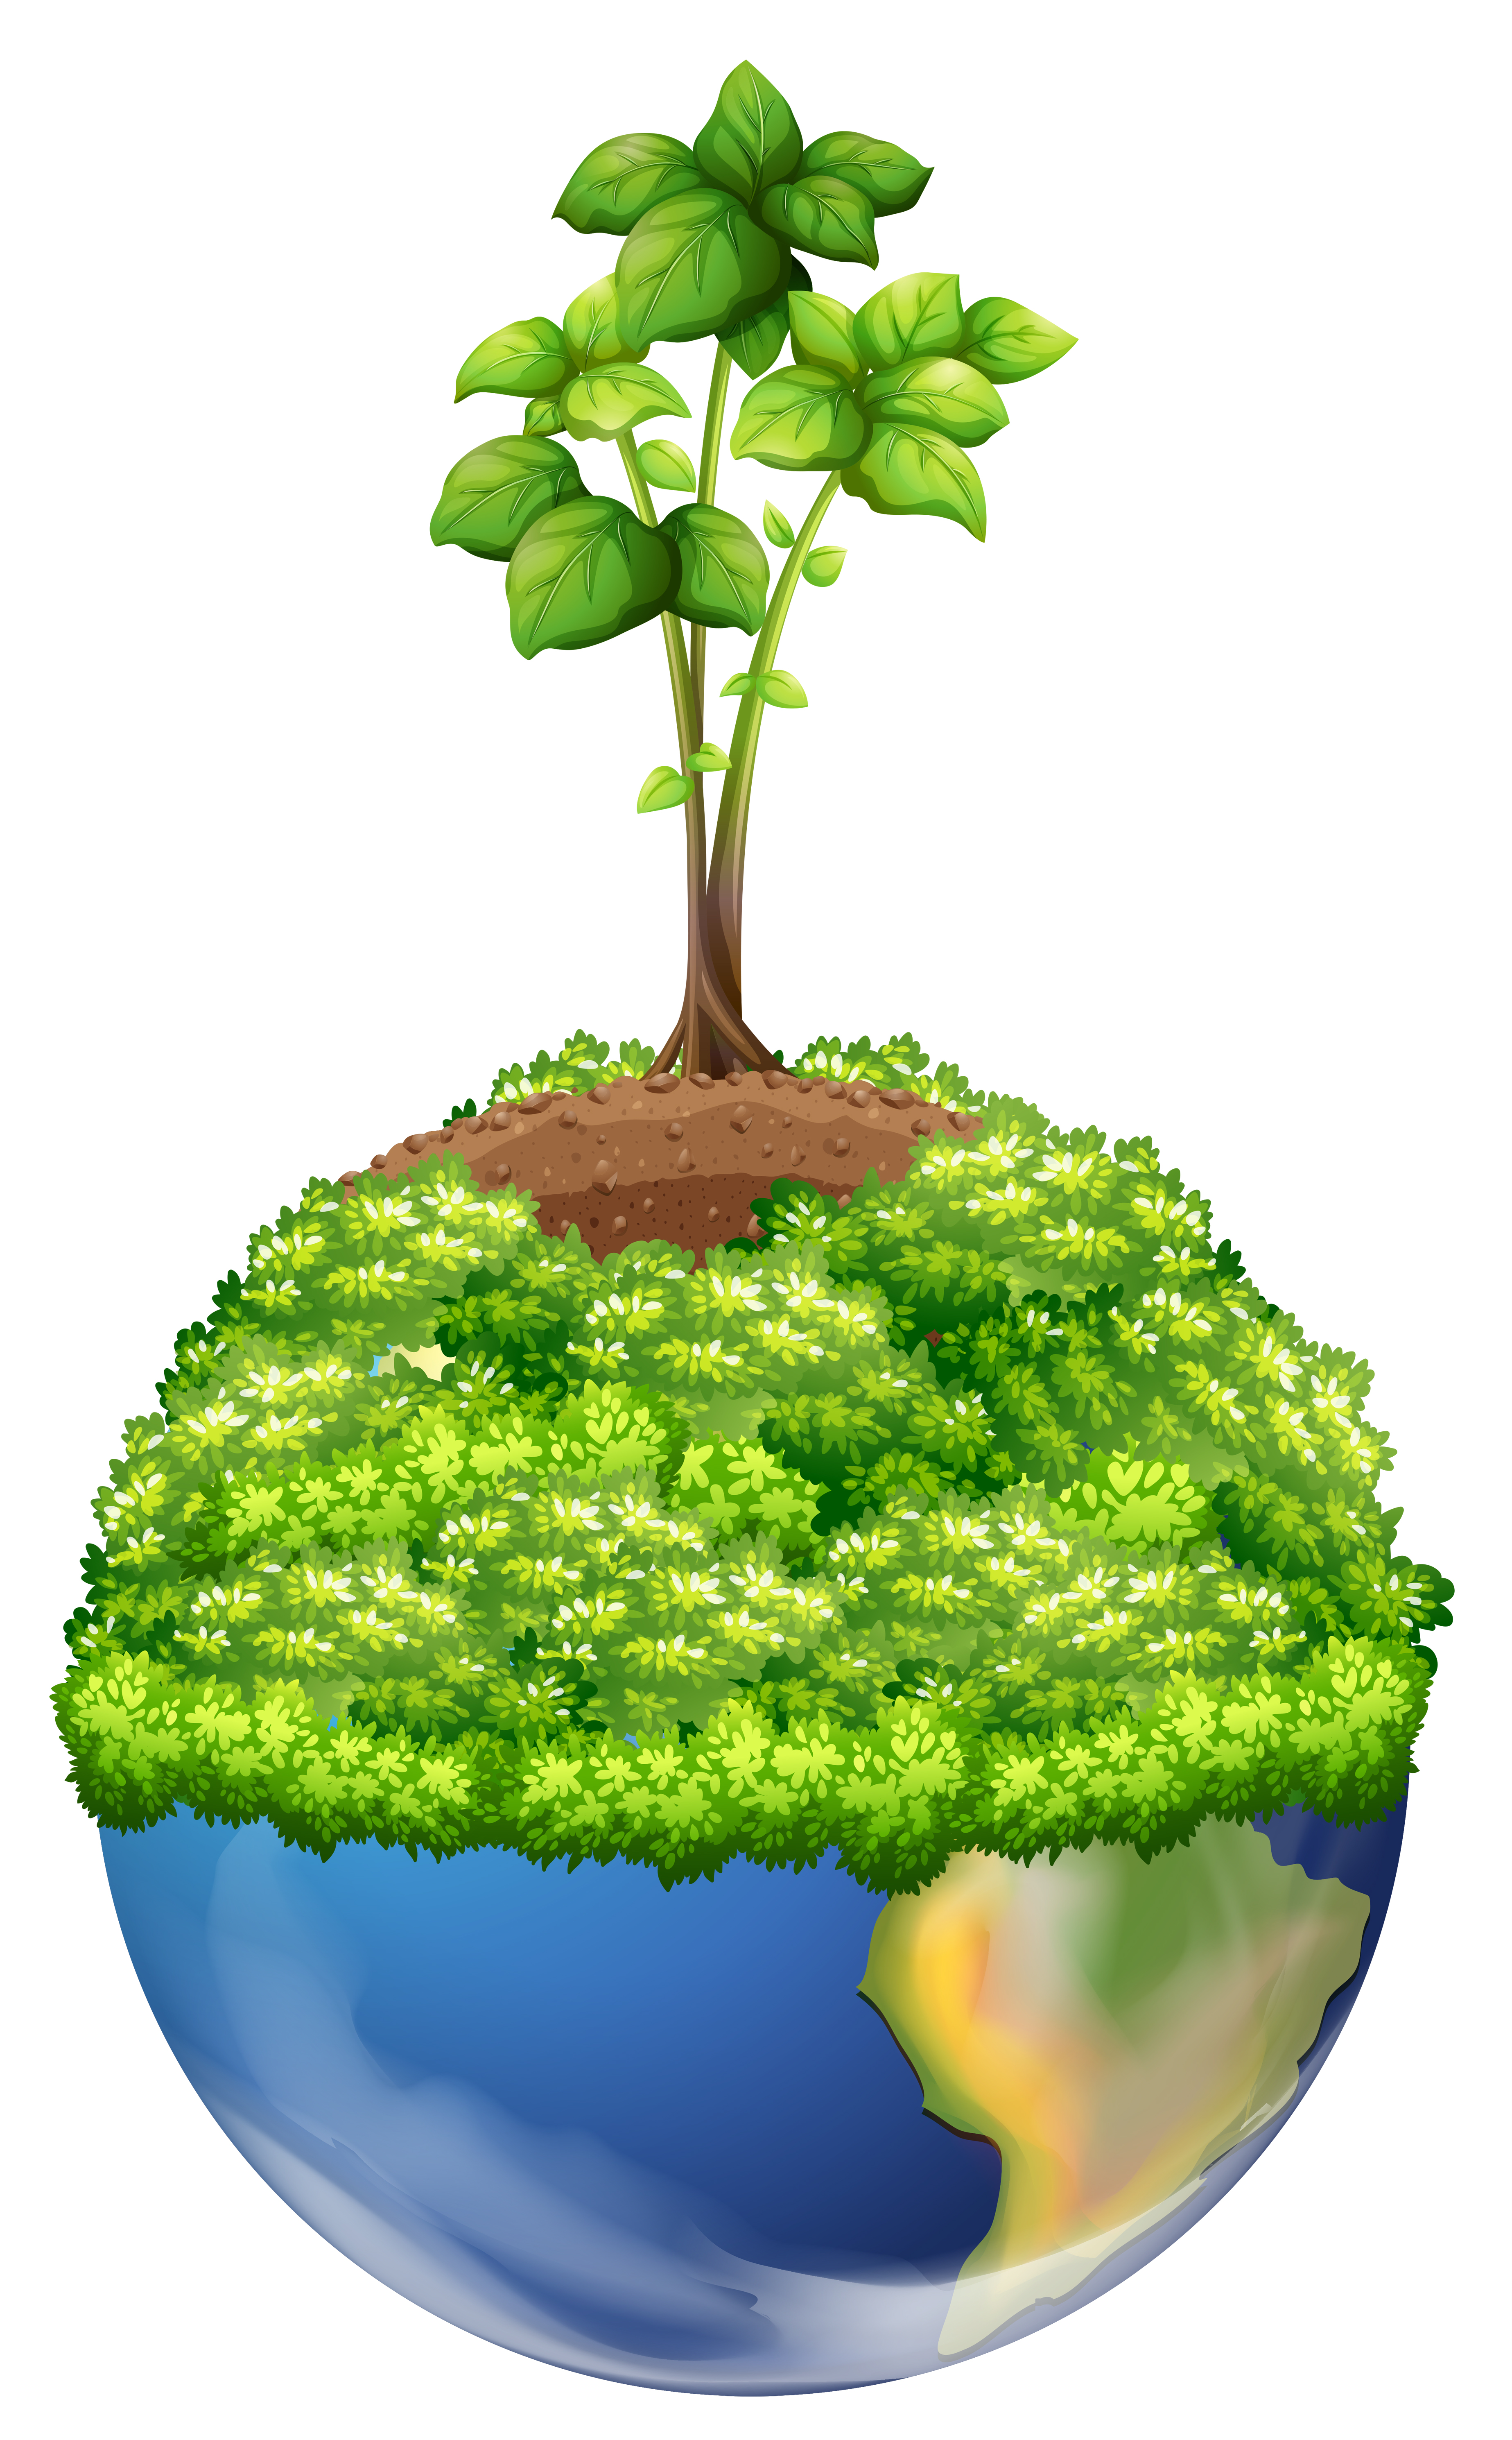 Green Plants On Earth Download Free Vectors Clipart